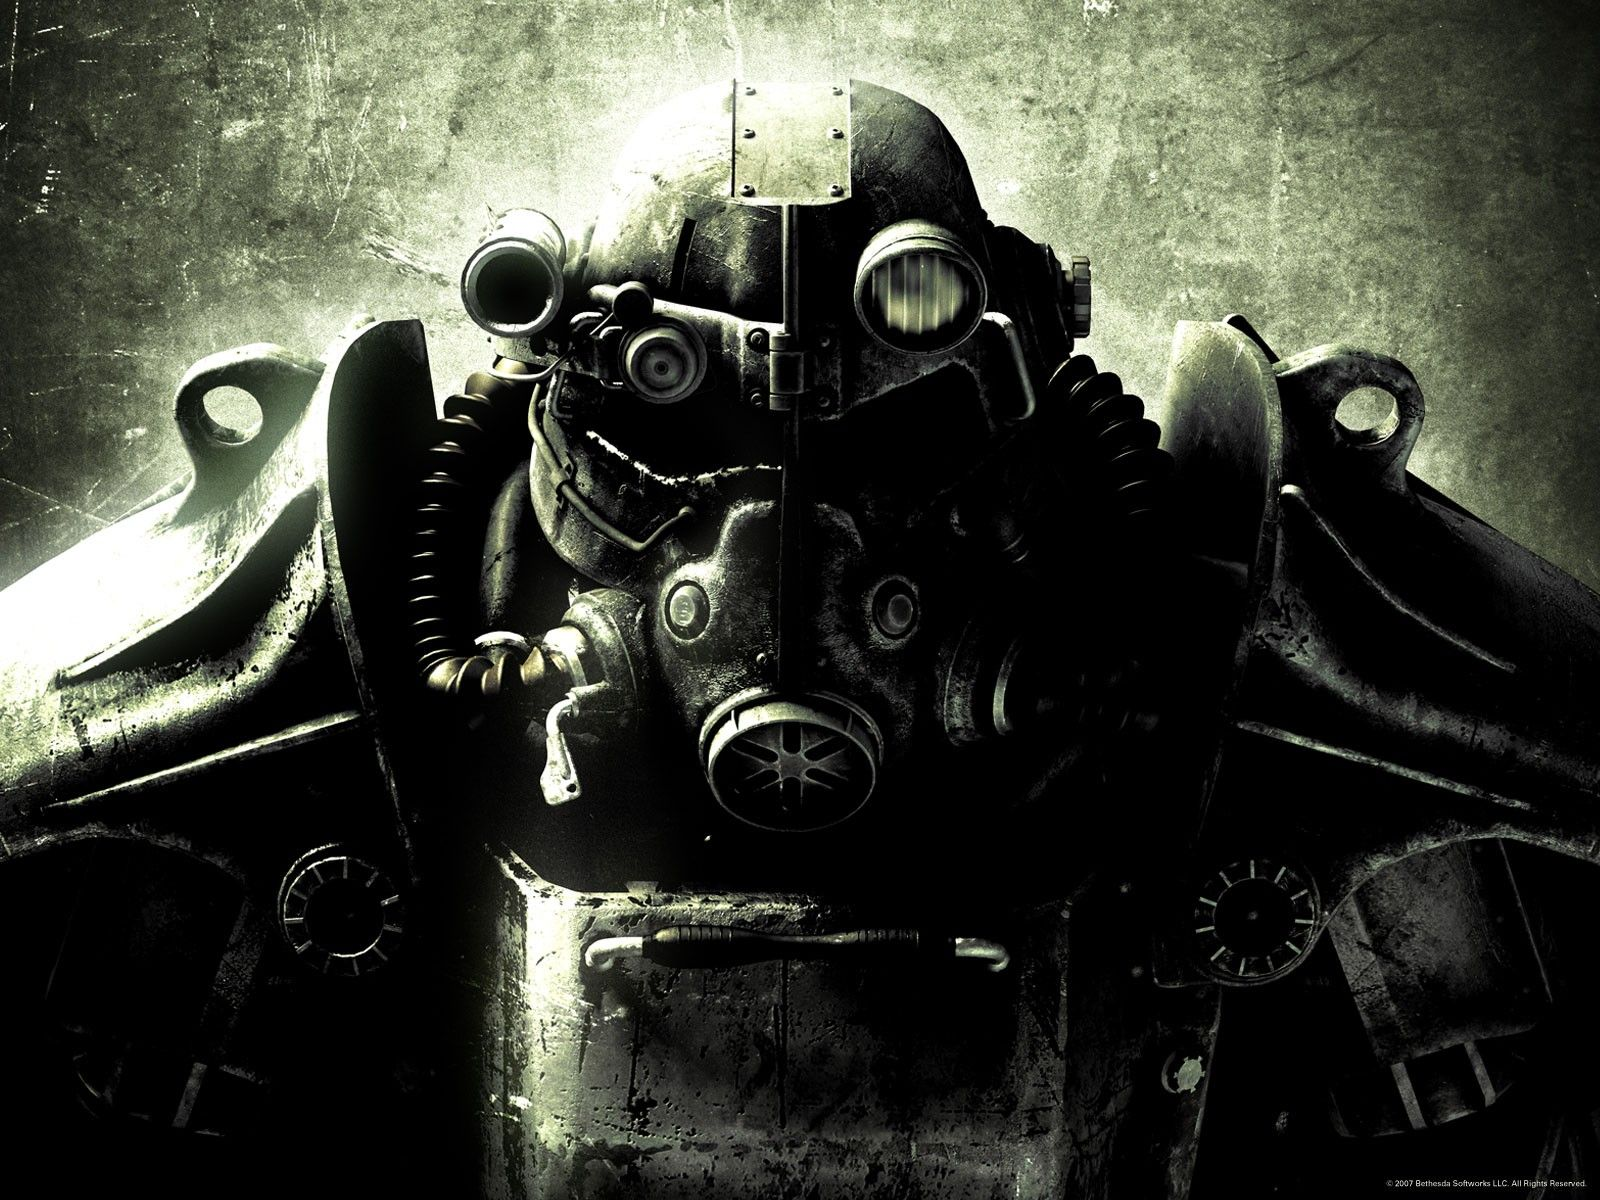 Fallout: New Vegas gameplay trailer